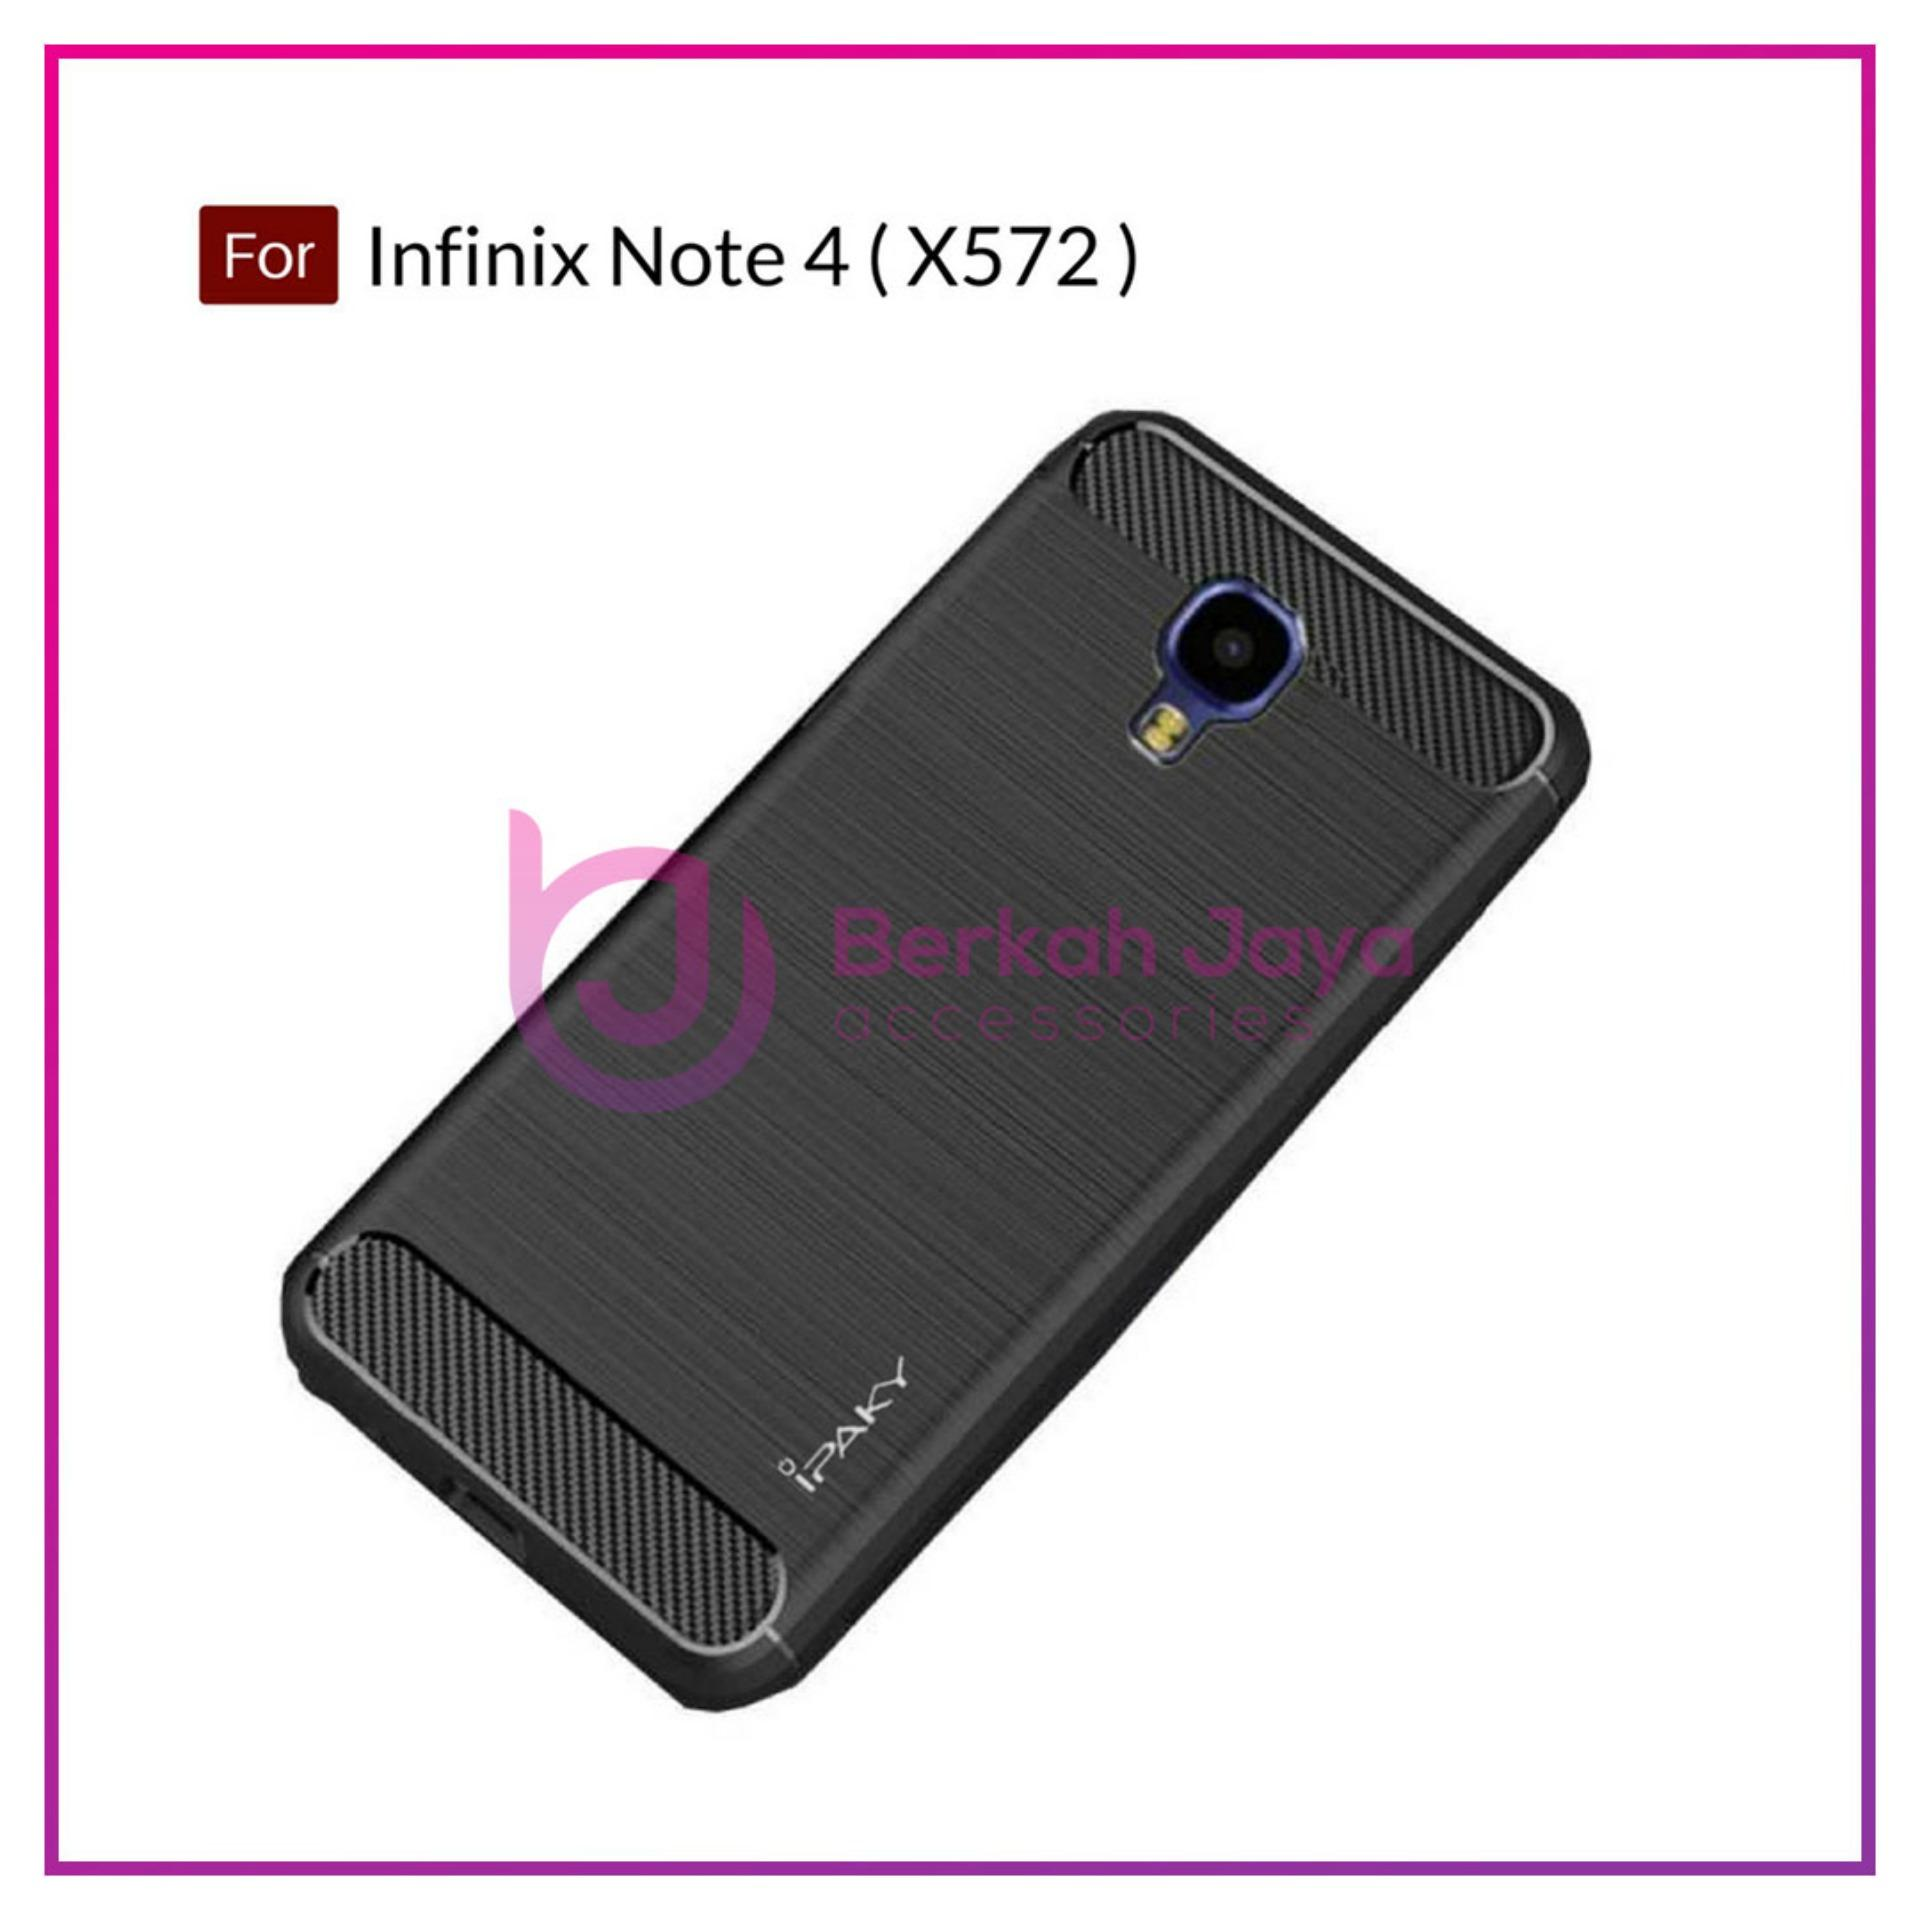 Buy Sell Cheapest Infinix Smart Cover Best Quality Product Deals Armor Case Hot 4 Pro X556 Bj Accessories Premium Carbon Shockproof Hybrid For Note X572 Black